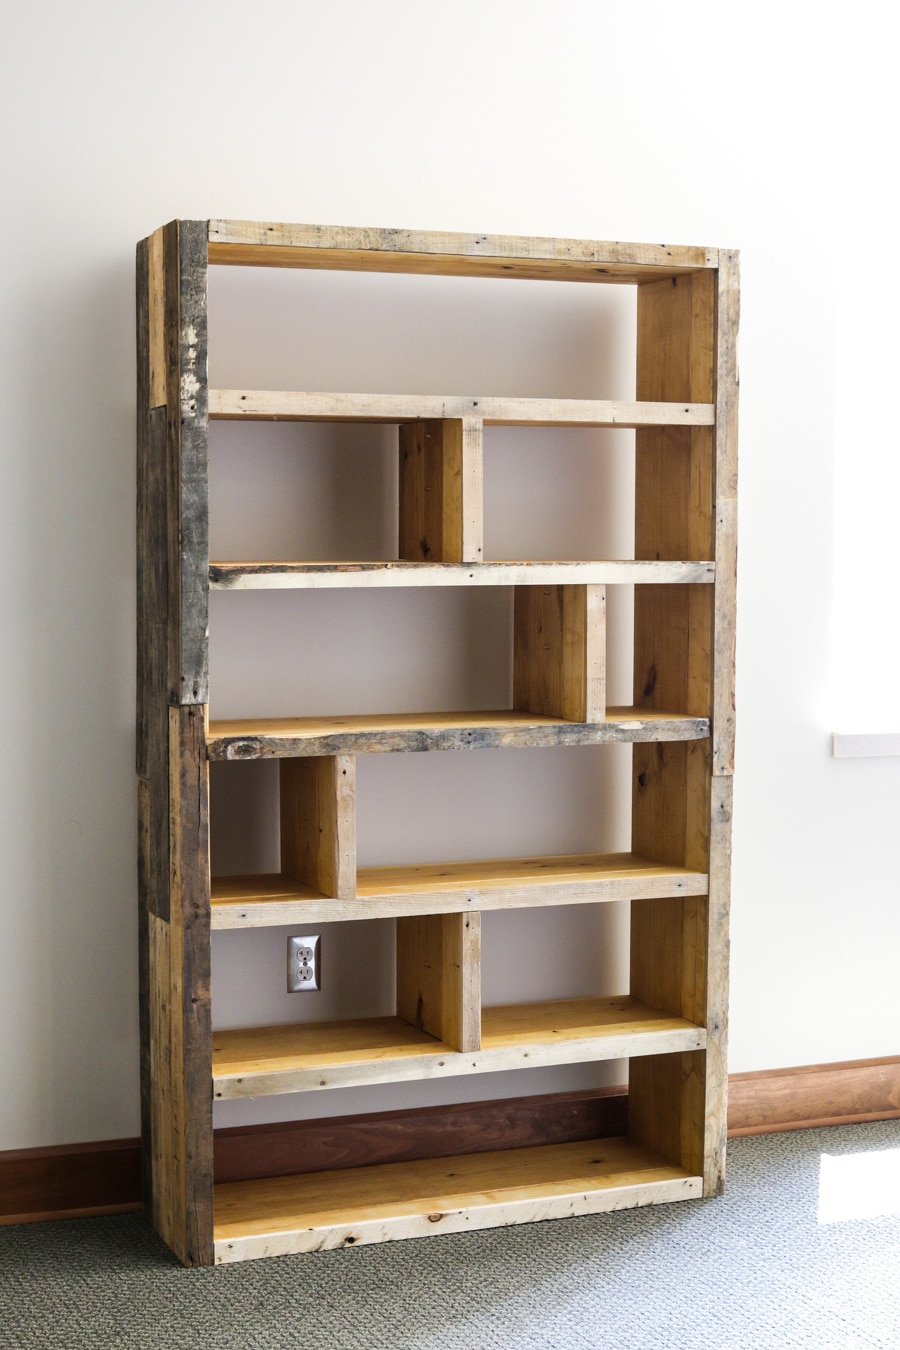 How to build a DIY pallet bookshelf